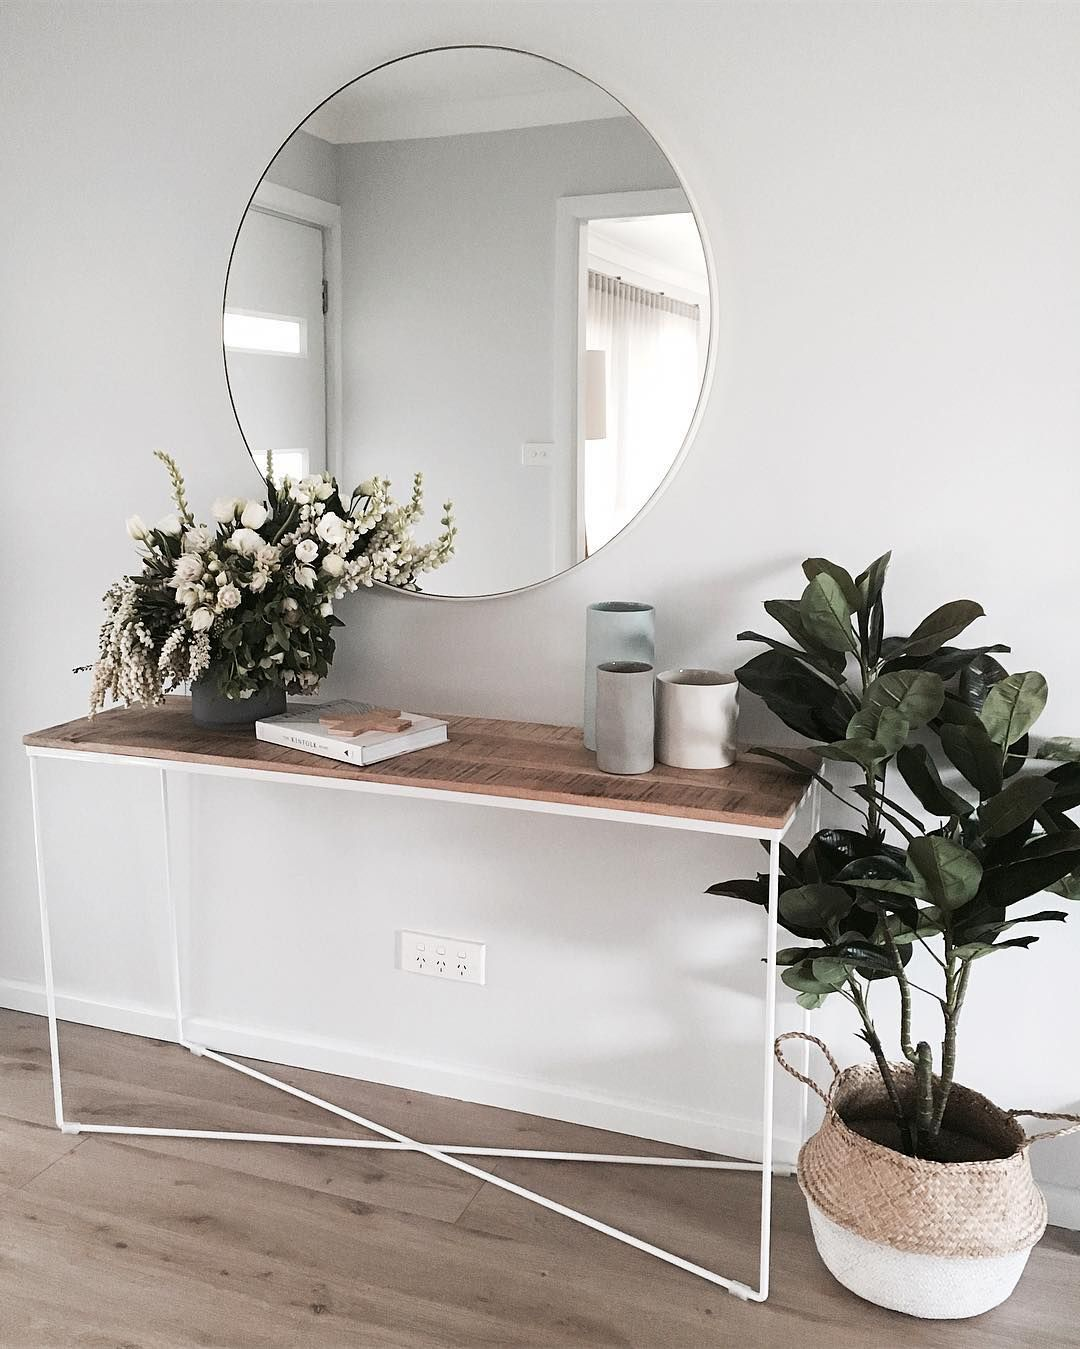 Pin by mia bjurkell on hall pinterest stylists sydney and interiors